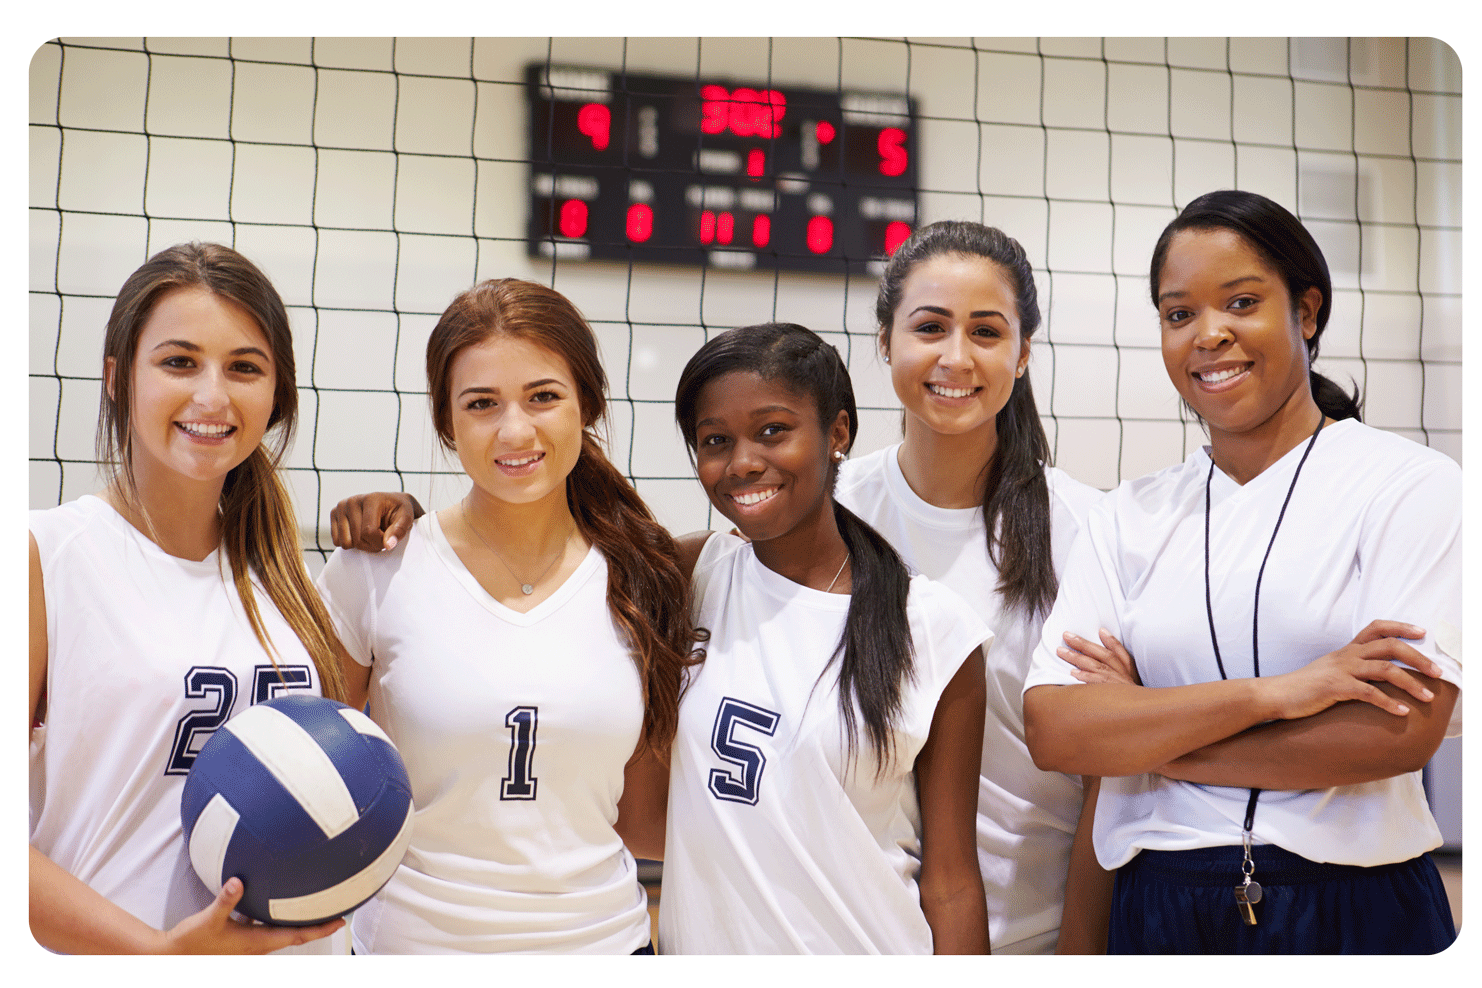 Girls Volleyball Team Smiling at the Y